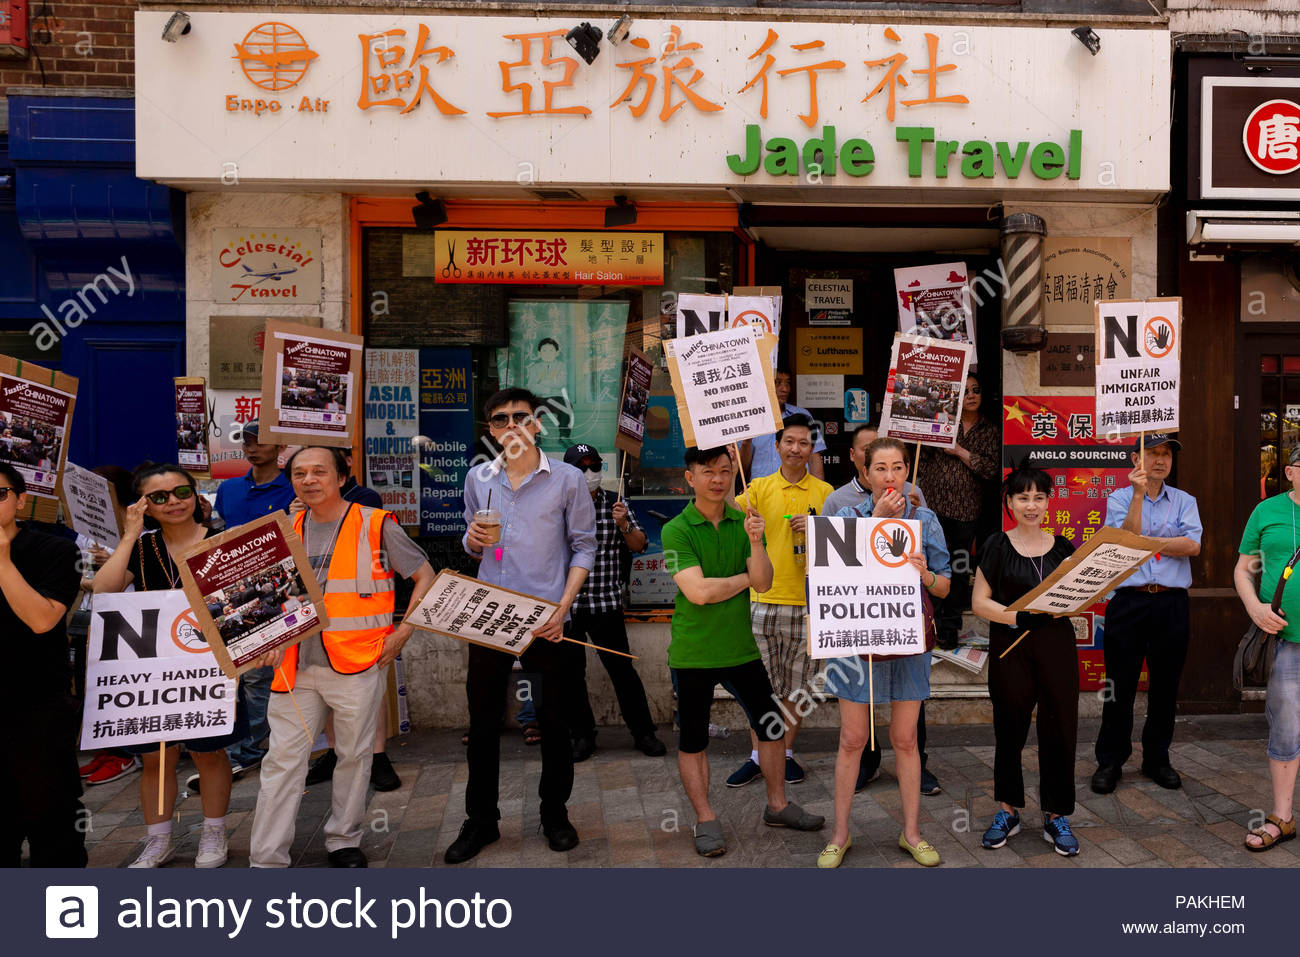 London, Great Britain, 24 Jul 2018 Businesses in London's Chinatown went on strike to protest at what they perceive heavy handed behaviour by the immigration services in a recent 'fishing' raid.  Tensions boiled over after one such raid when an elderly lady needed to be sent to hospital for treatment  Credit: David Nash/Alamy Live News - Stock Image